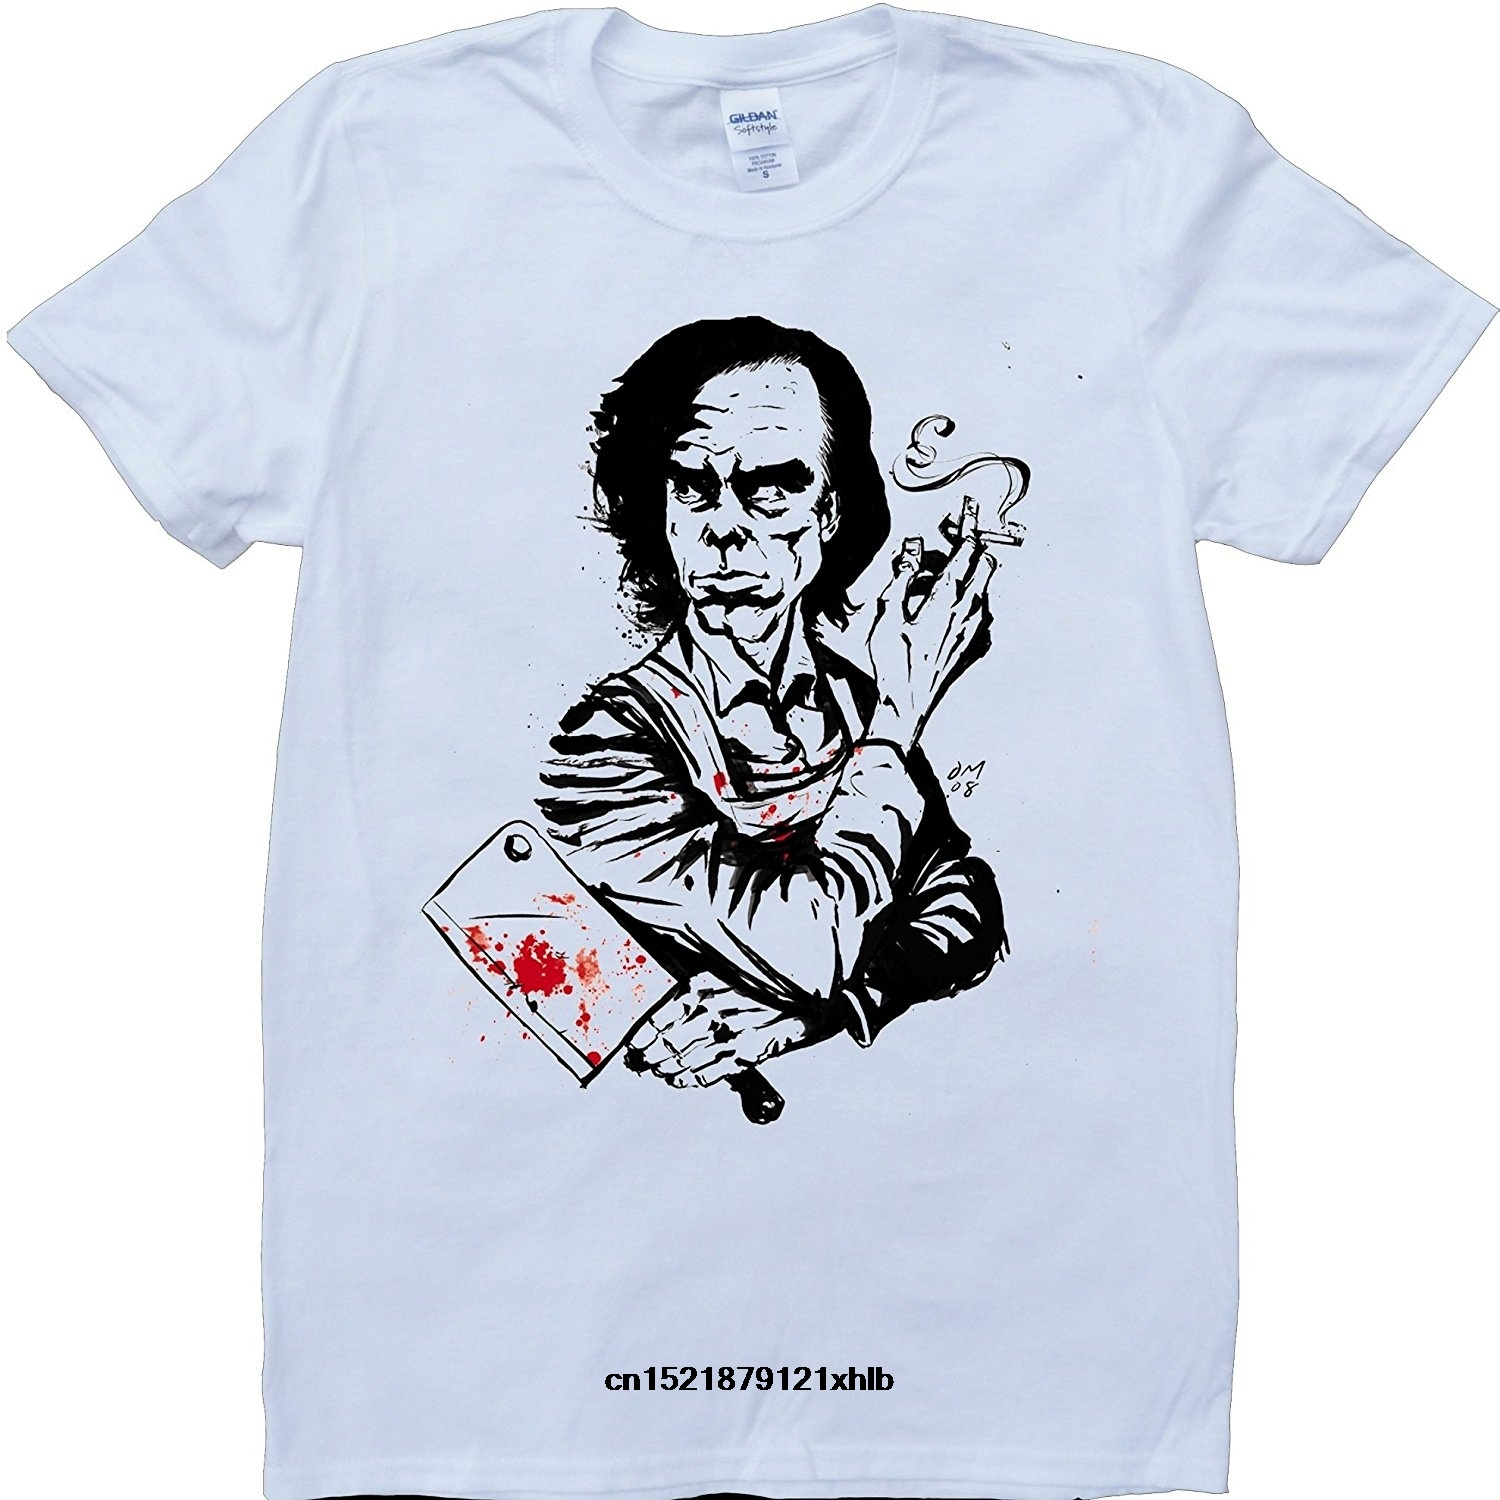 Men T Shirt Nick Cave Cleaver White O-Neck Funny T-shirt Novelty Tshirt Women